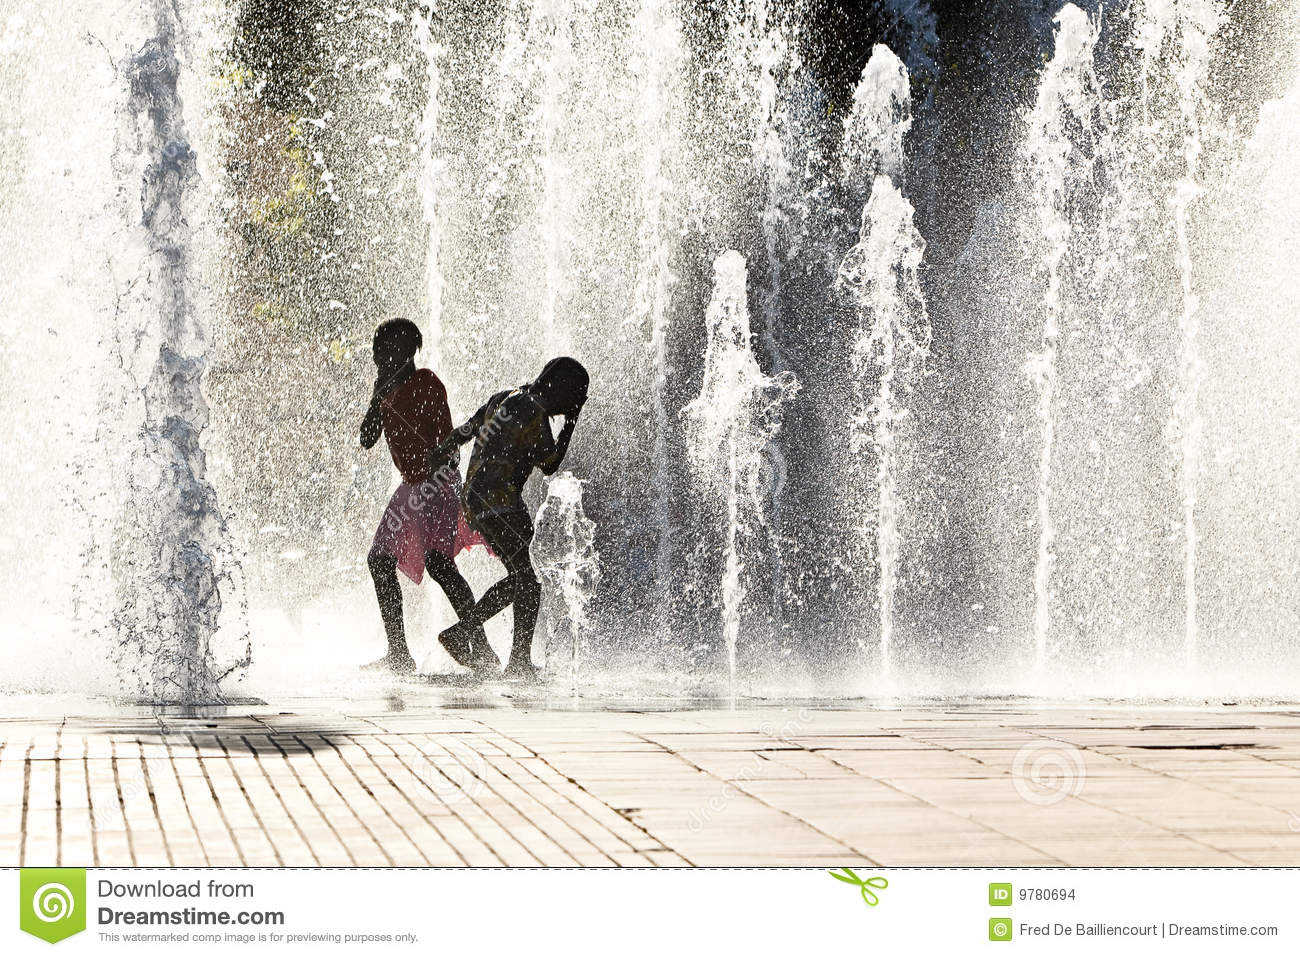 Girls playing in water jets